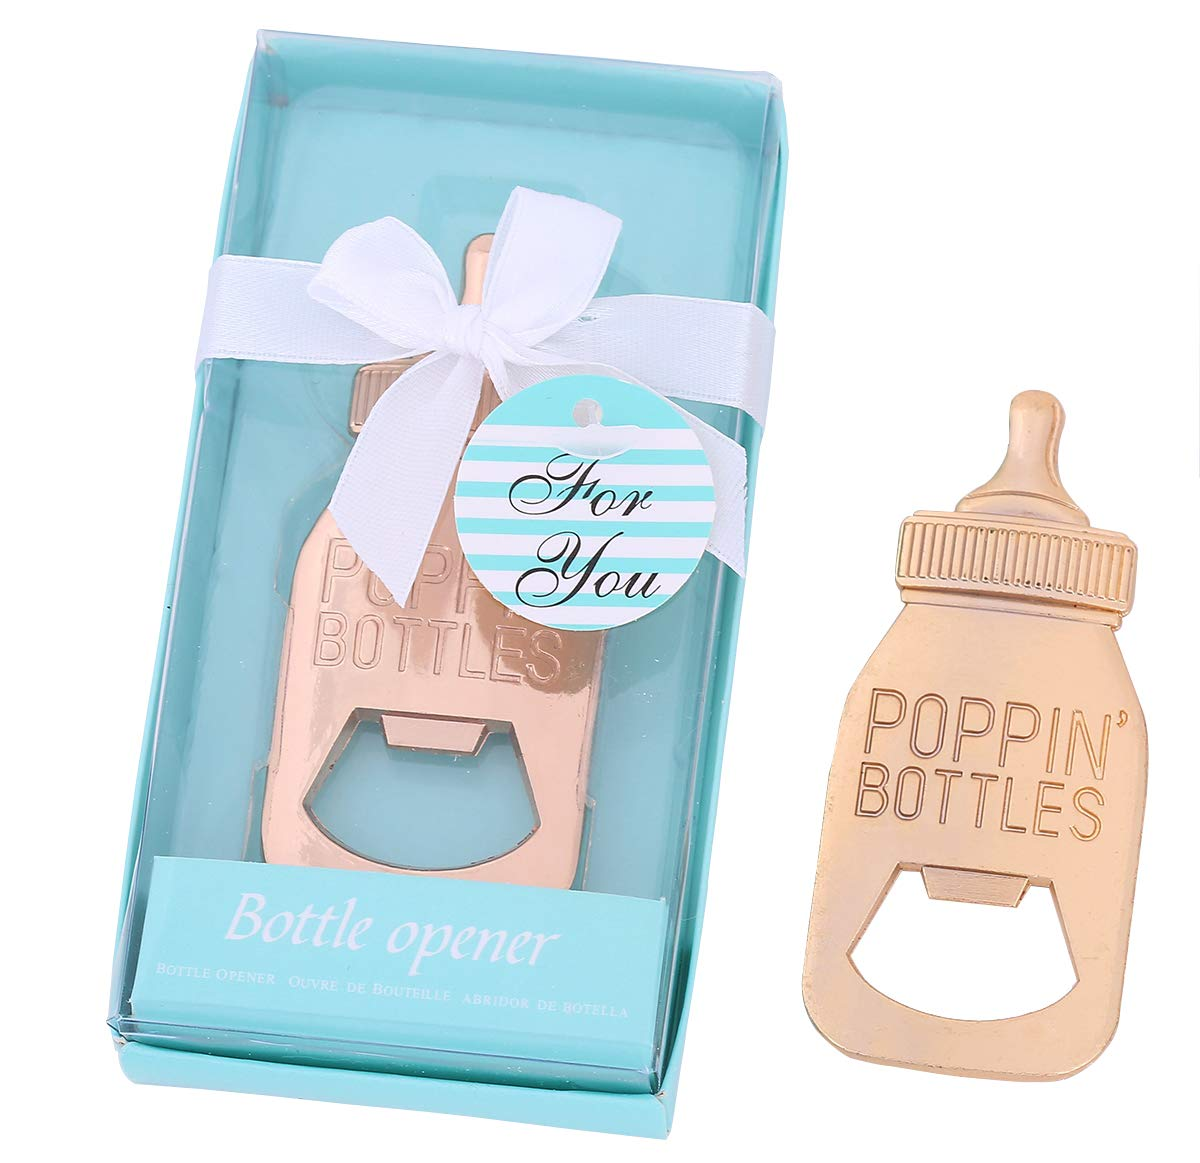 Baby Shower Return Gifts for Guest Supplies Poppin Baby Bottle Shaped Bottle Opener with Exquisite packaging For Guests Party Souvenirs decorations 12pcs by WeddParty (Baby Bottle)